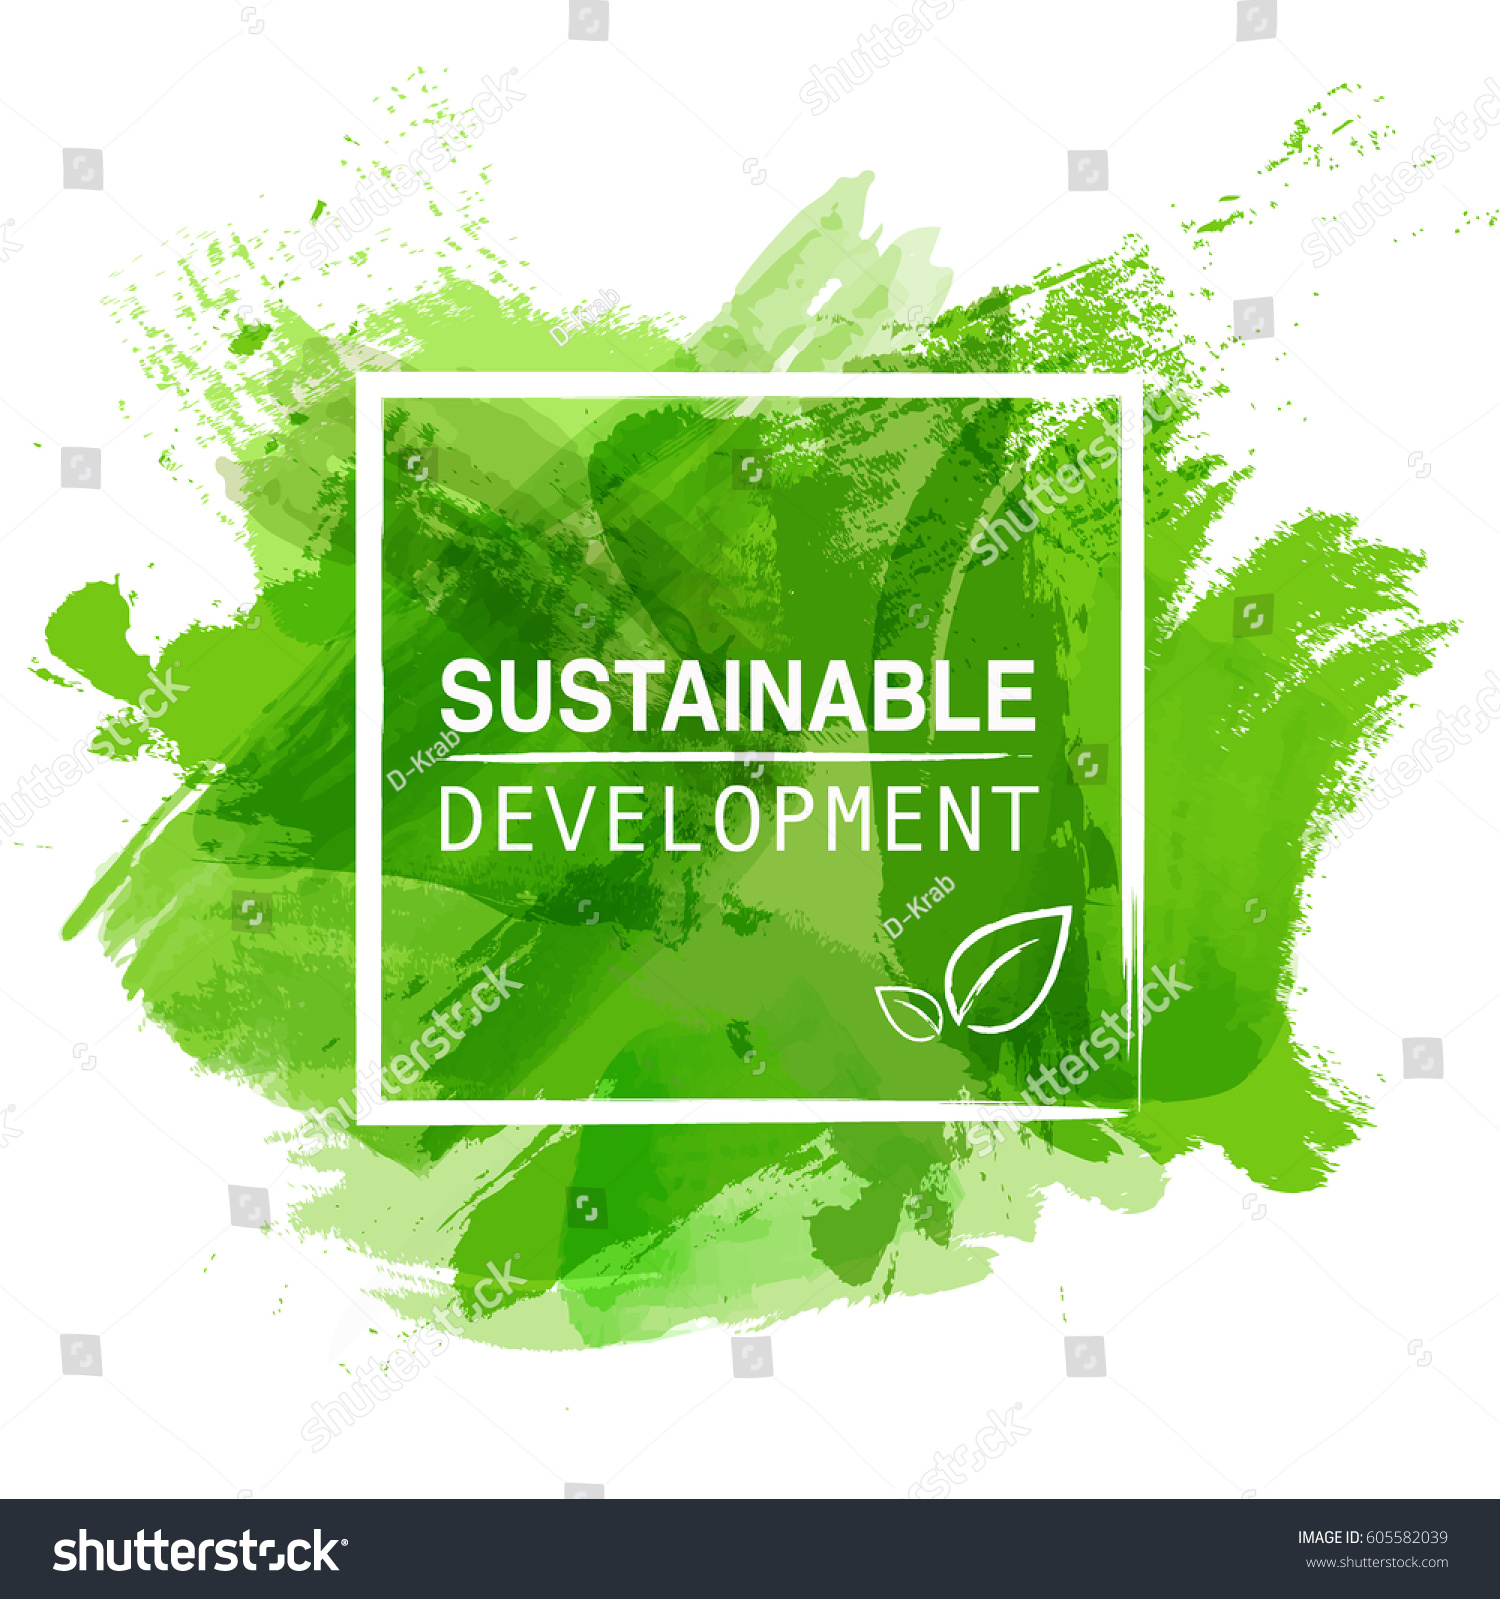 green and sustainable development in an As the environmental impact of buildings becomes more apparent, a new field called green building is gaining momentum green smart growth and sustainable development building types homes schools commercial buildings laboratories healthcare facilities funding opportunities.